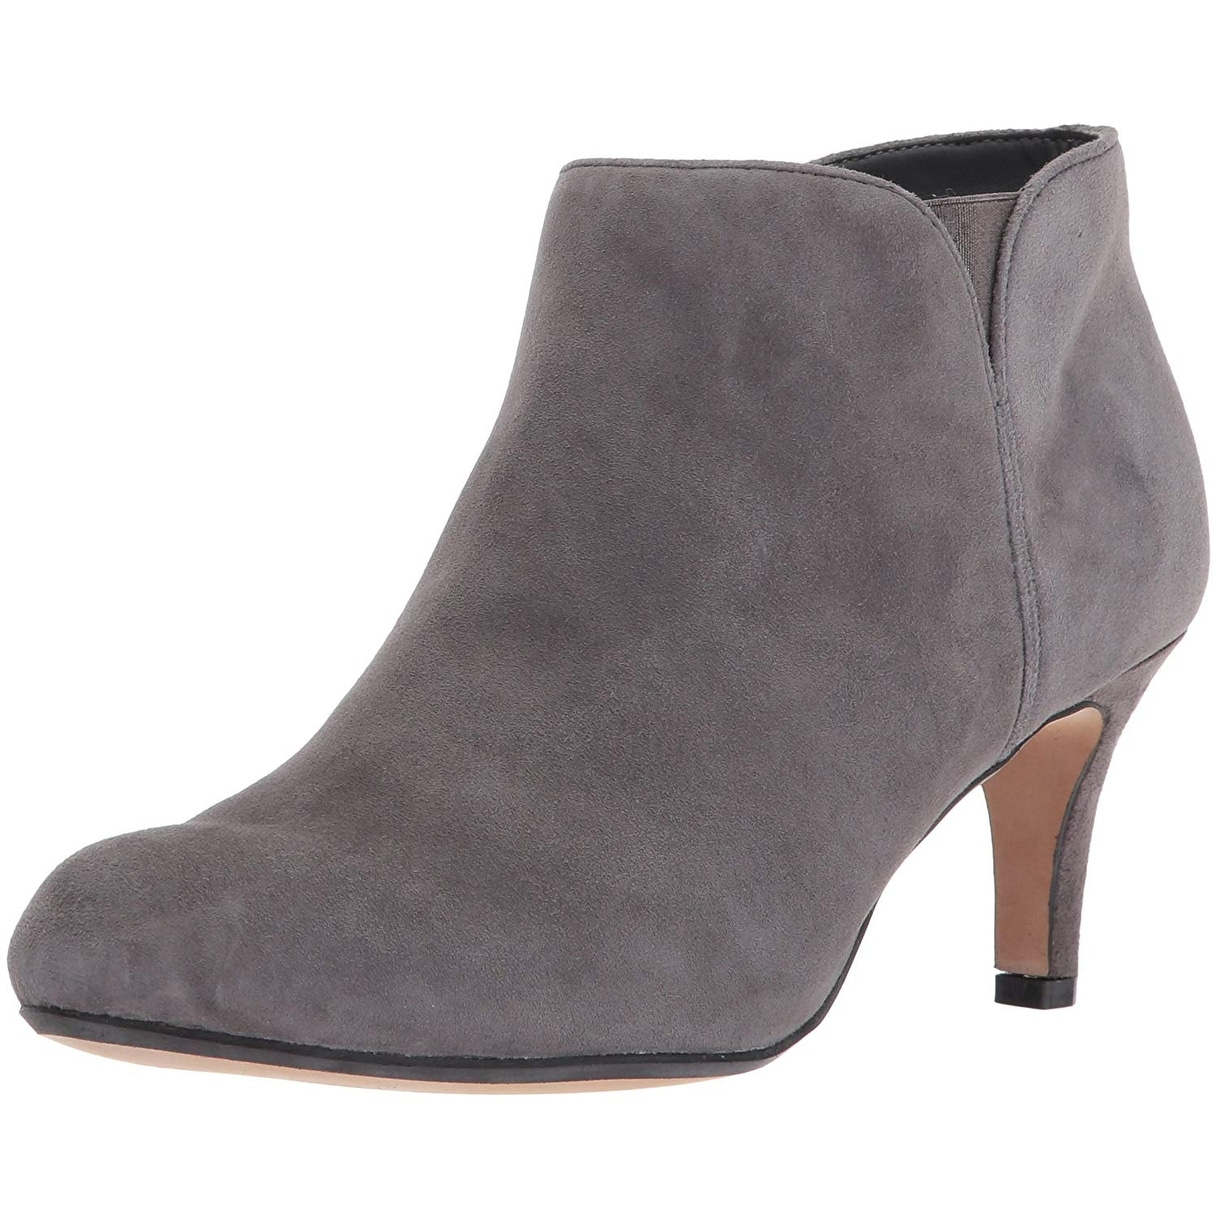 1e69d42a06d Shop Clarks Womens Arista Paige Leather Almond Toe Ankle Fashion Boots -  Free Shipping Today - Overstock - 24088932